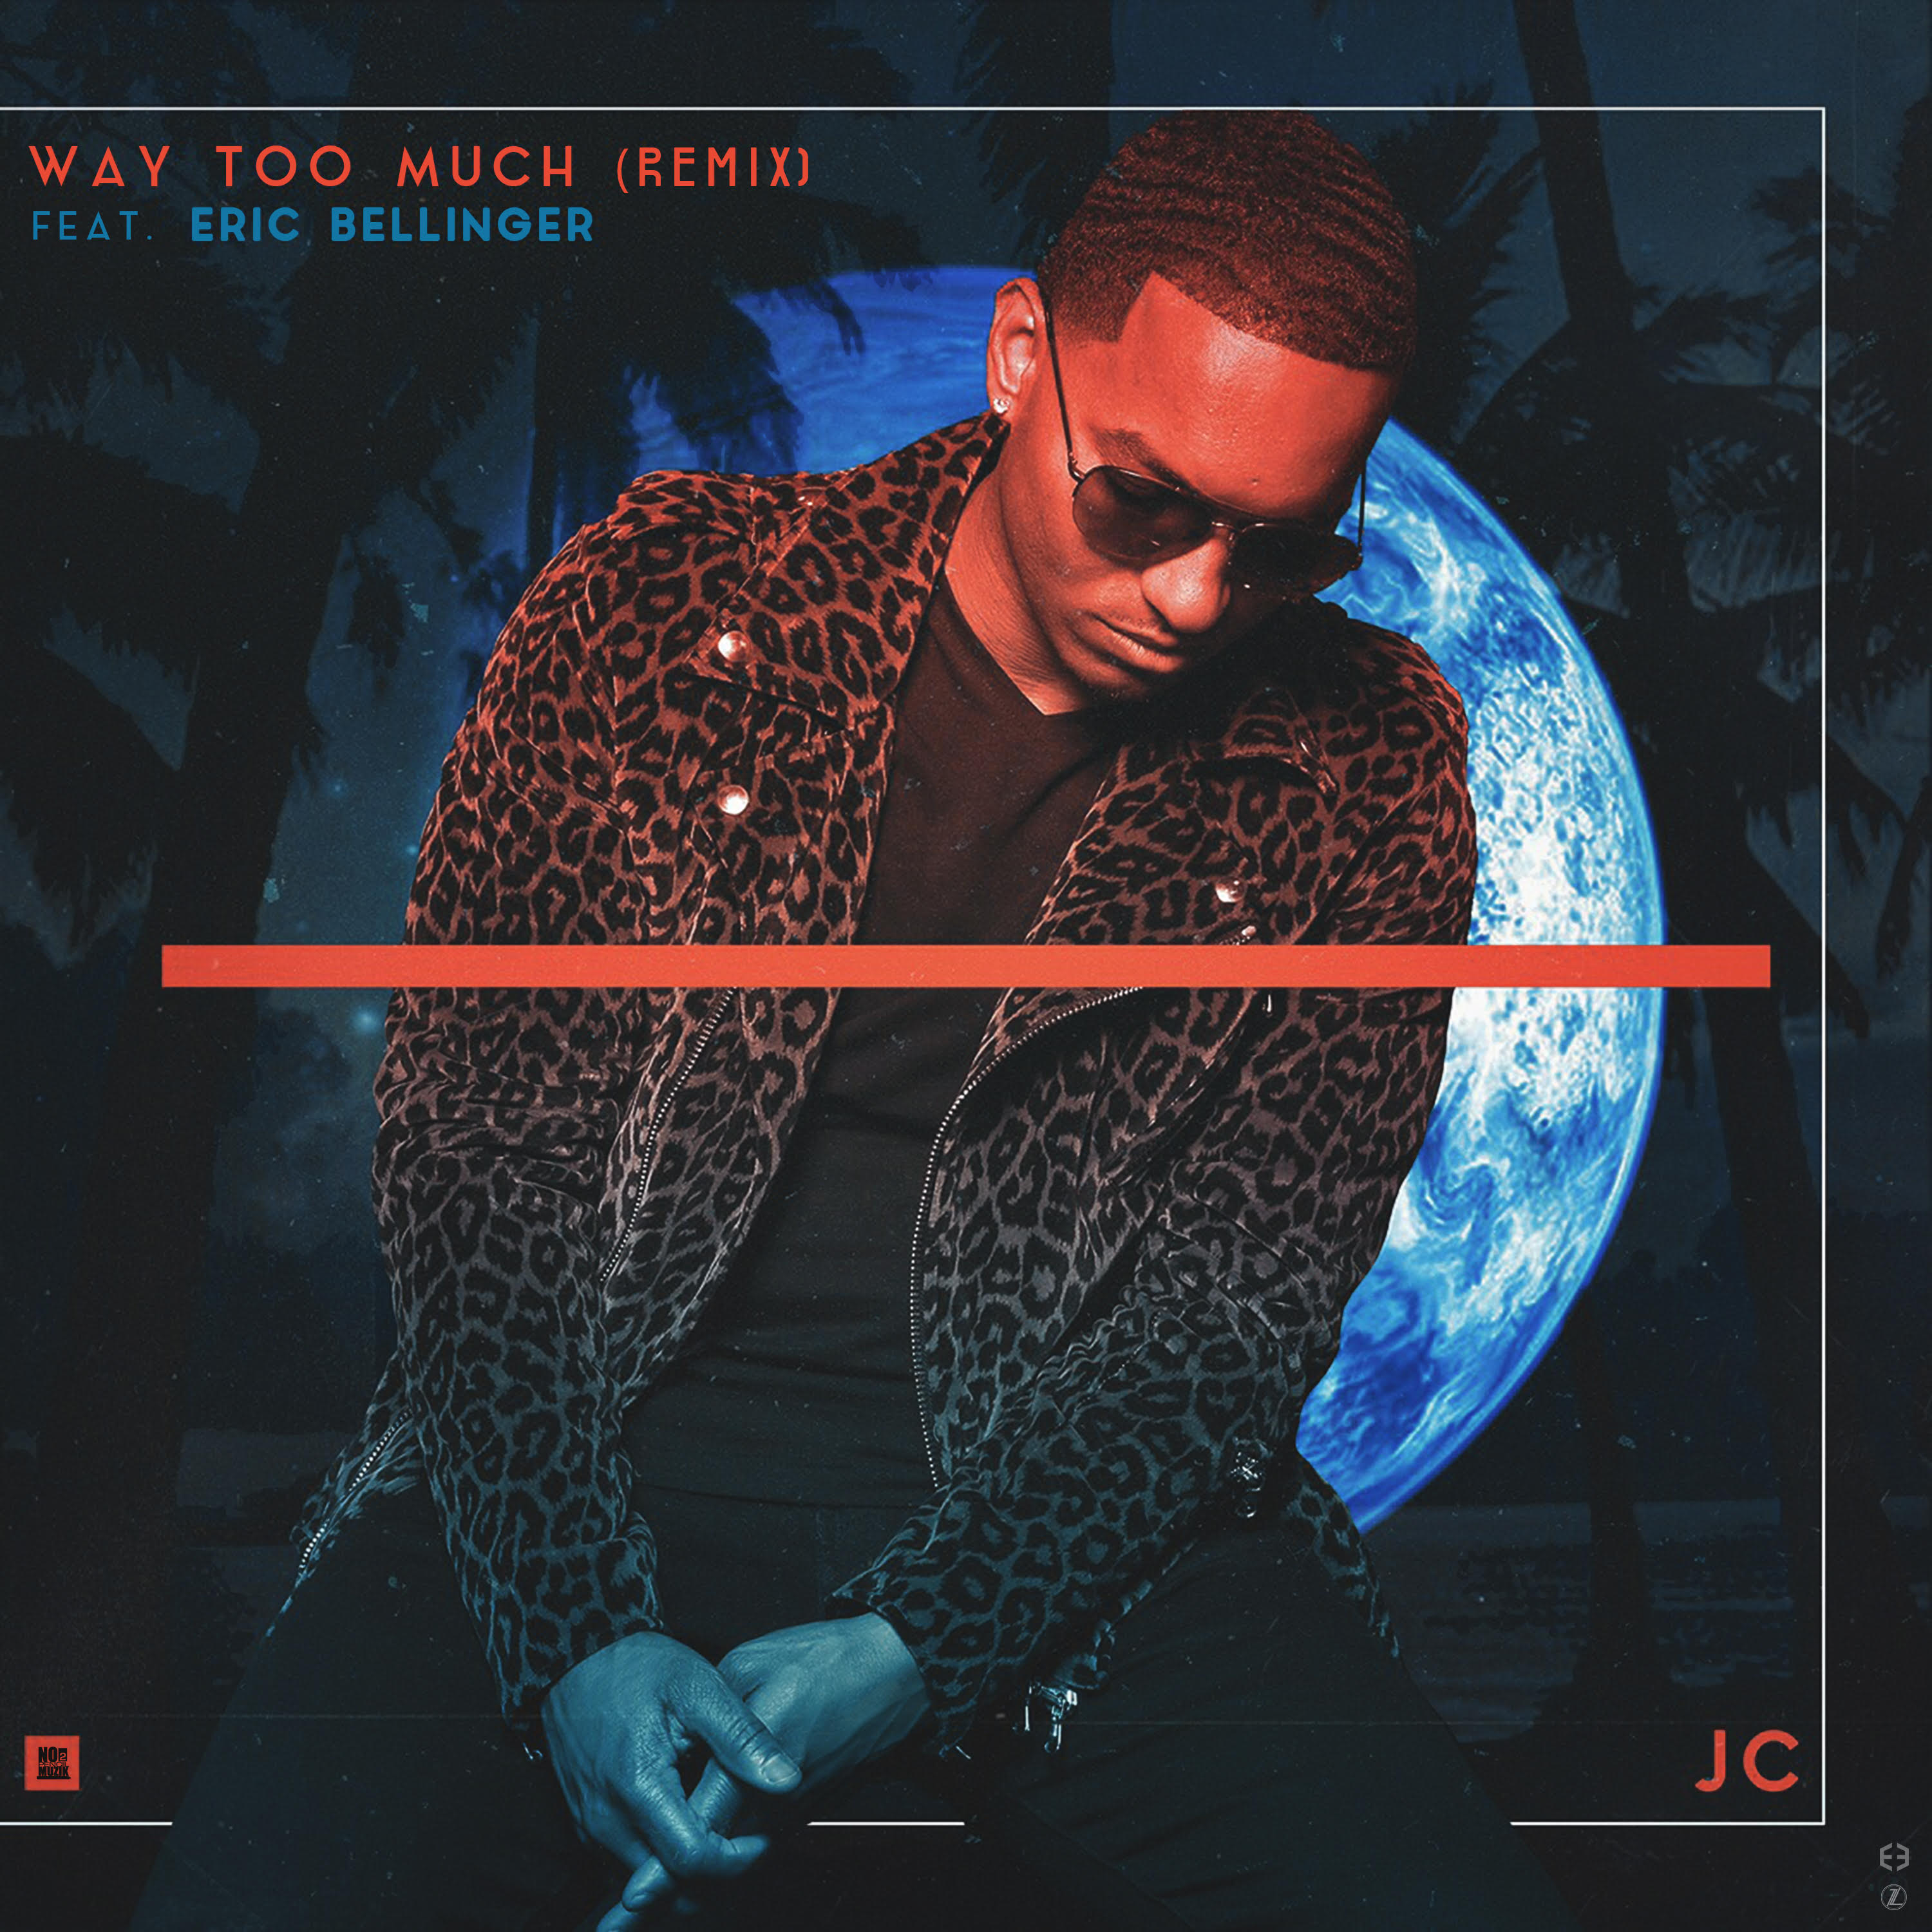 New Video: JC – Way Too Much Featuring Eric Bellinger | @itsyaboyjc